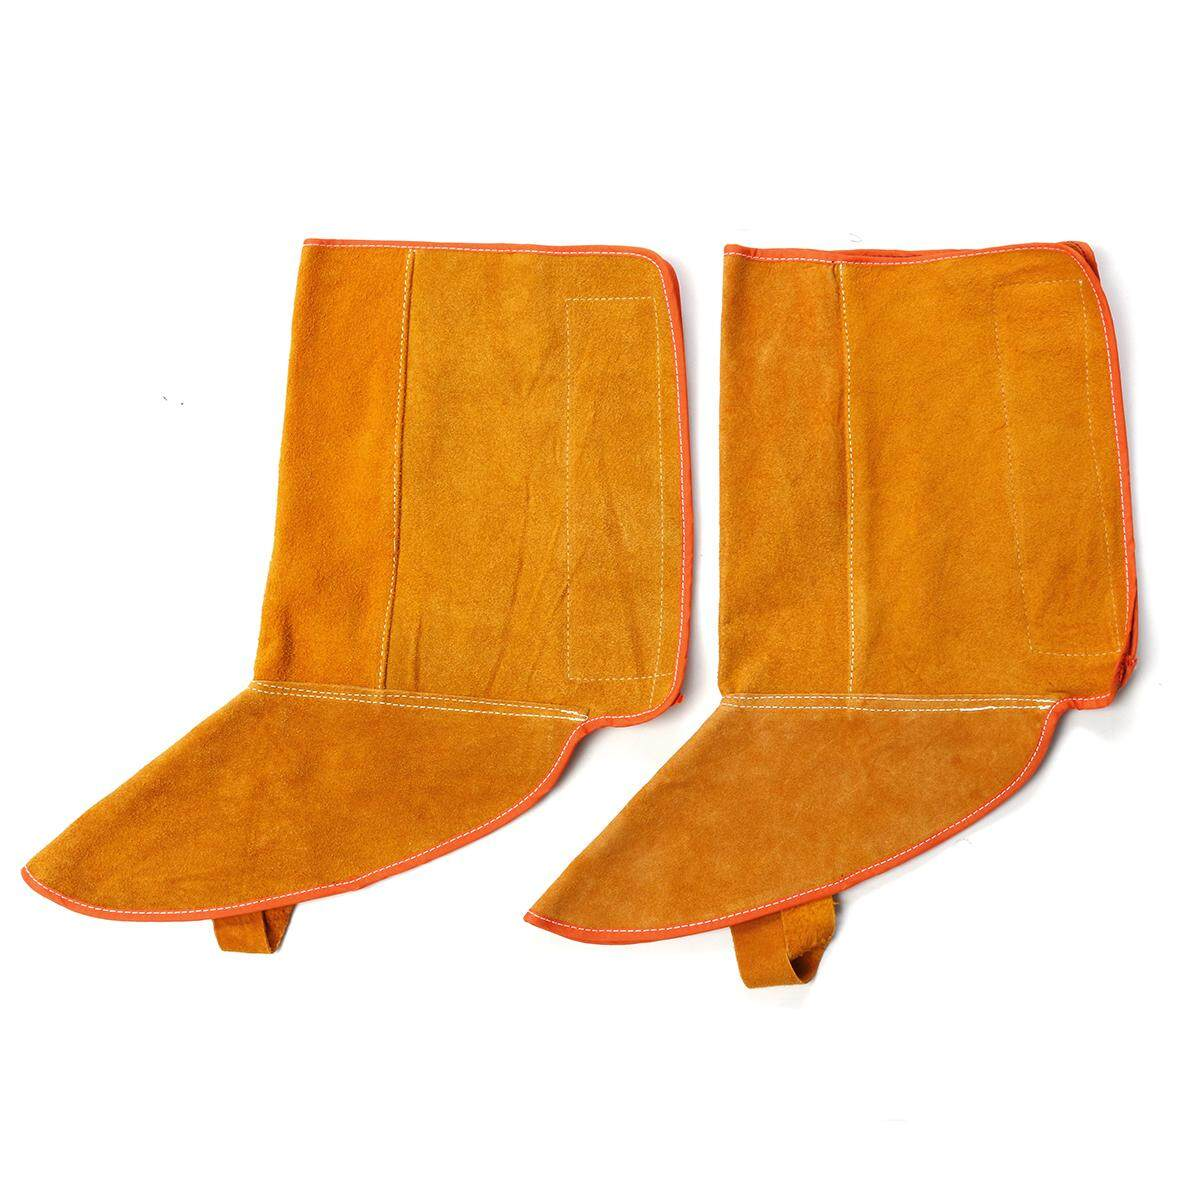 8.3Inch Cowhide Leather Welding Feet Protection Shoe Sleeve Welder Boot Protectors